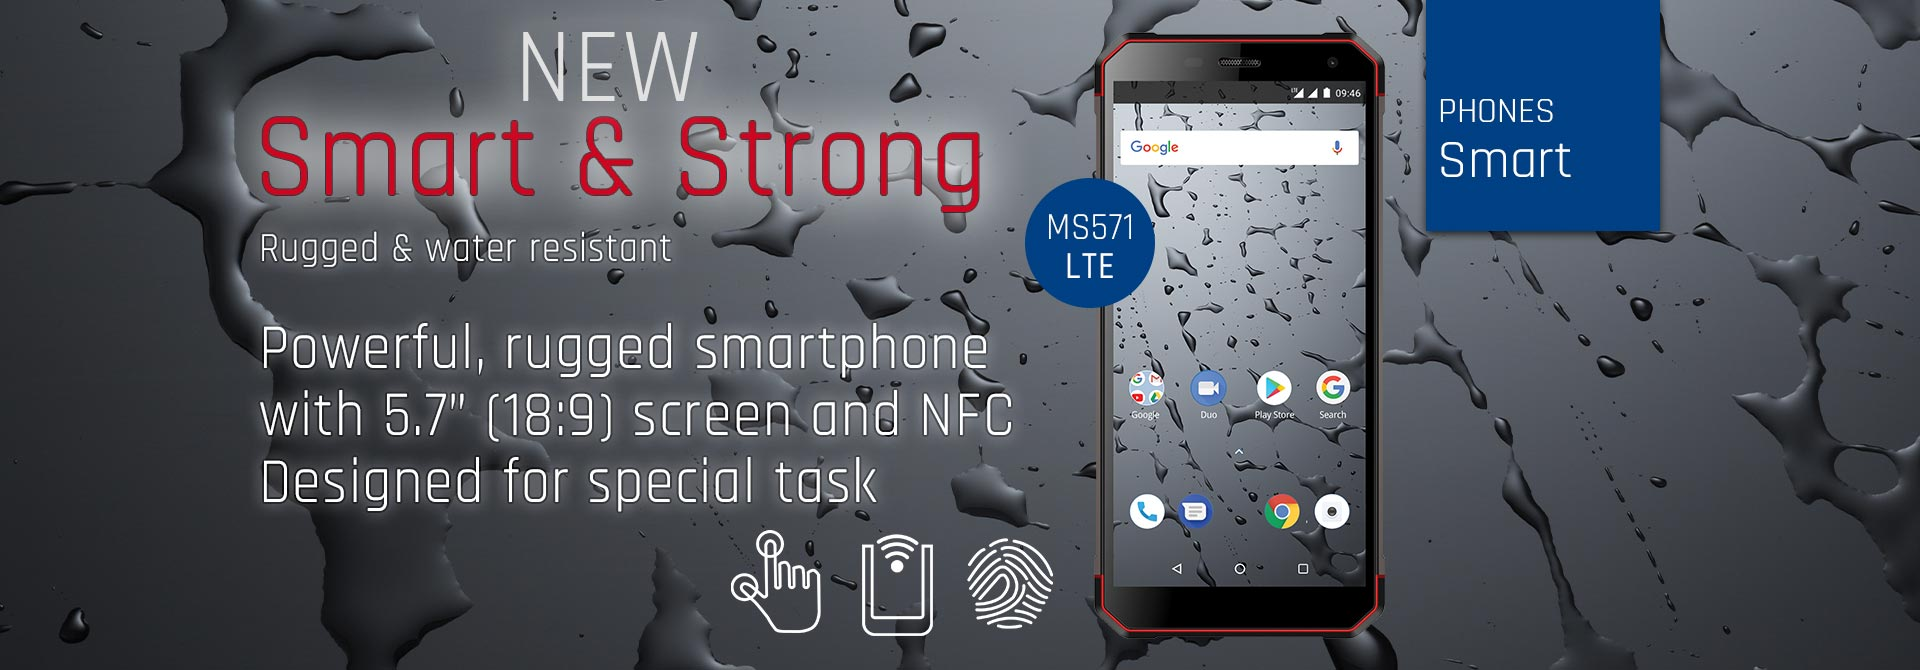 New Smart & Strong MS571 LTE